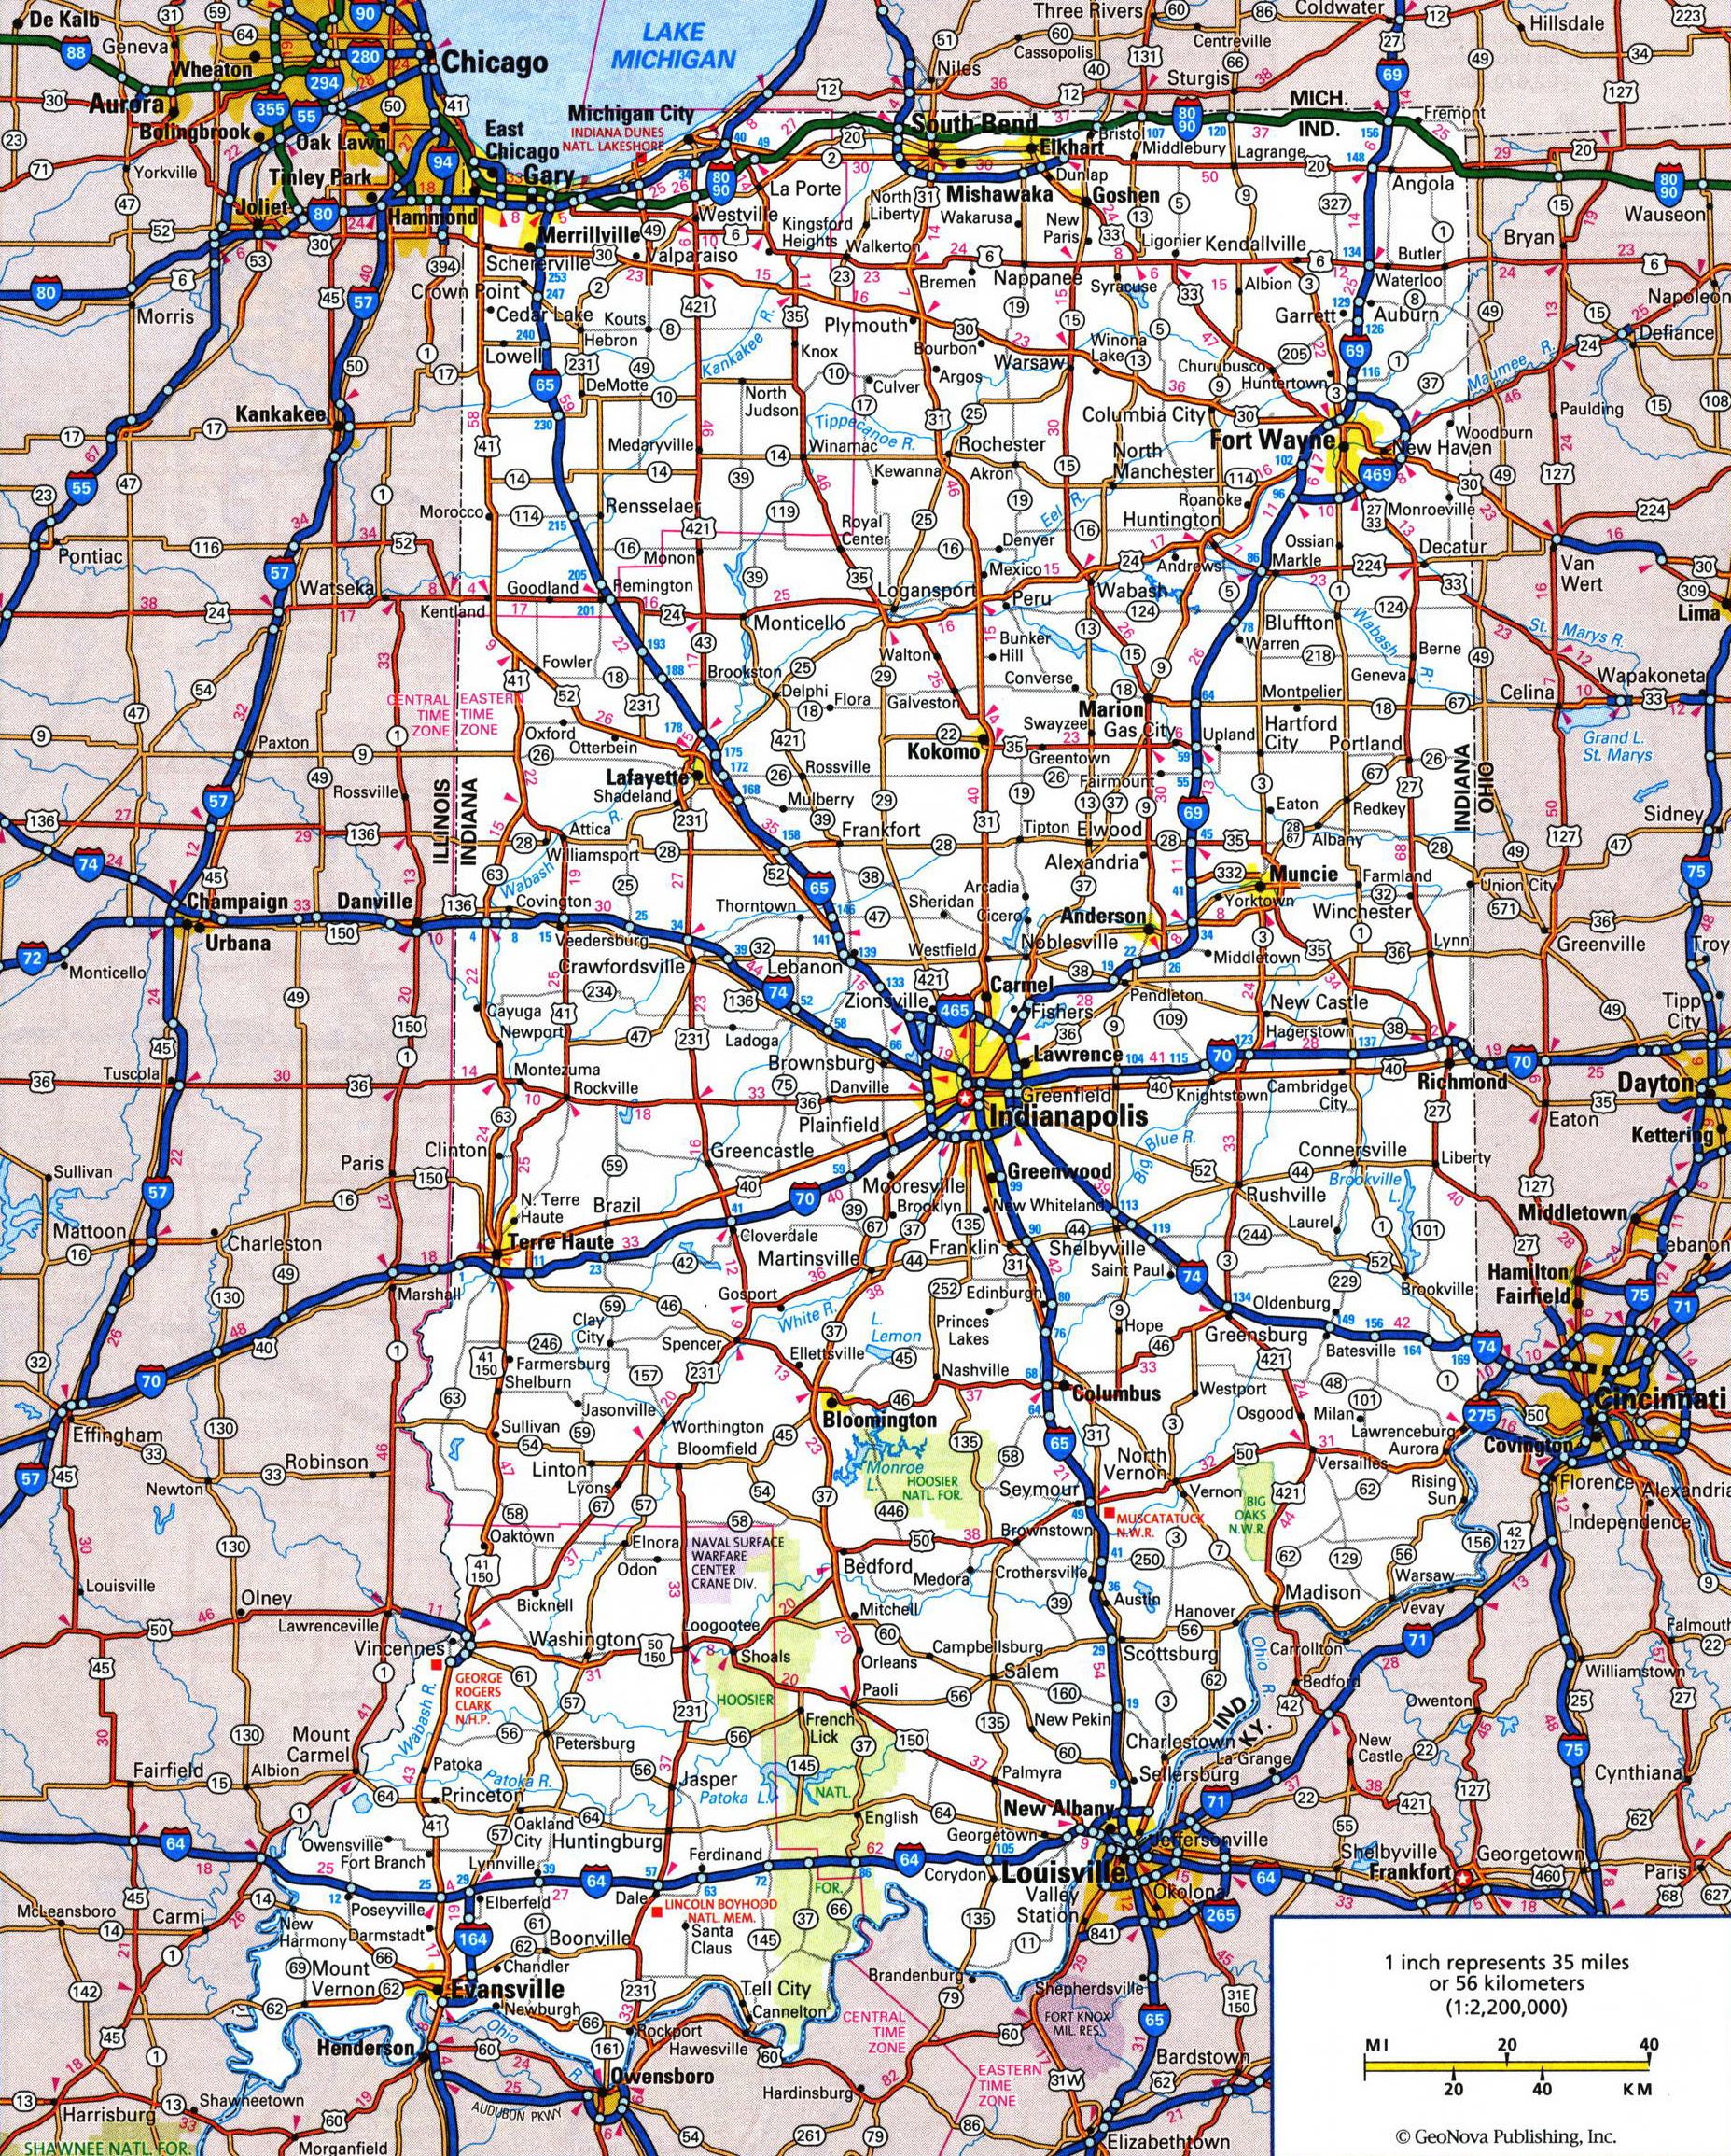 Highway Map Of Indiana Large detailed roads and highways map of Indiana state with all